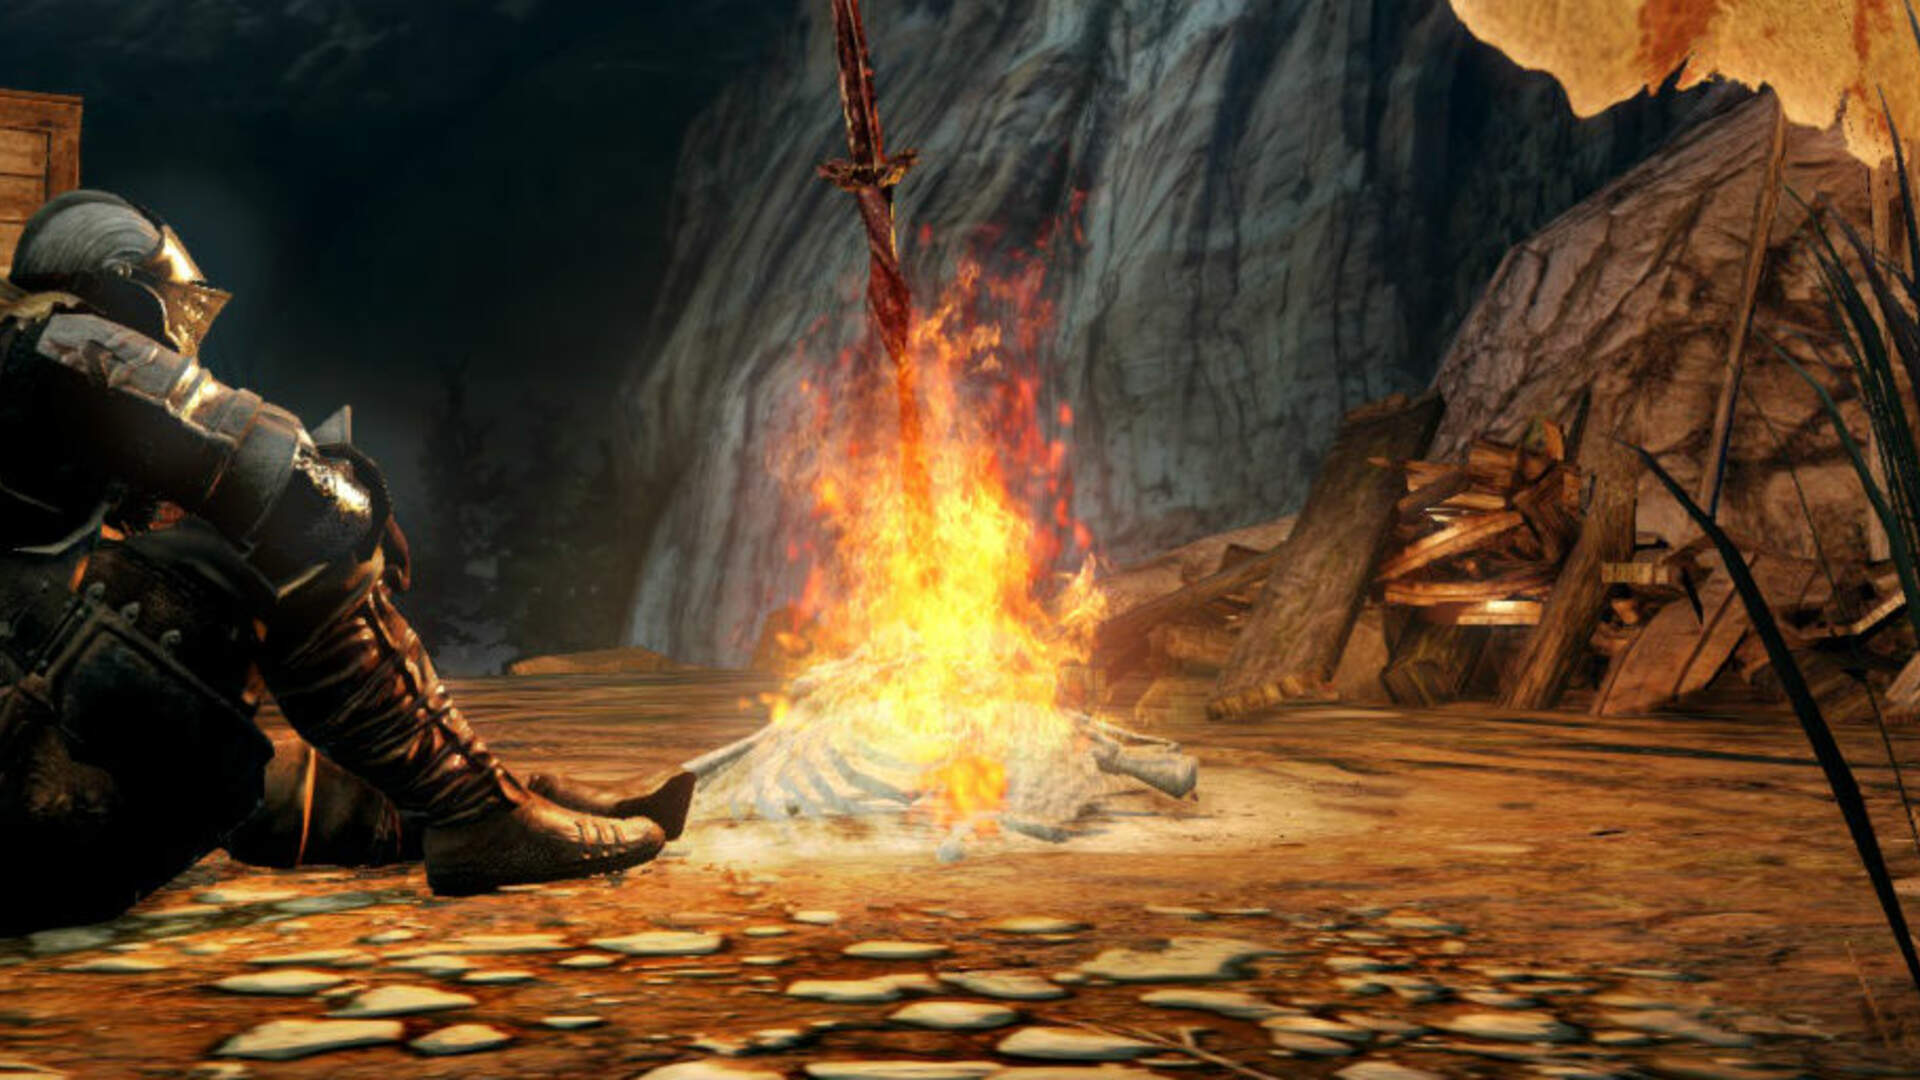 Dark Souls 2 Guide: Earthen Peak - Defeat the Covetous Demon and Head for the Iron Keep